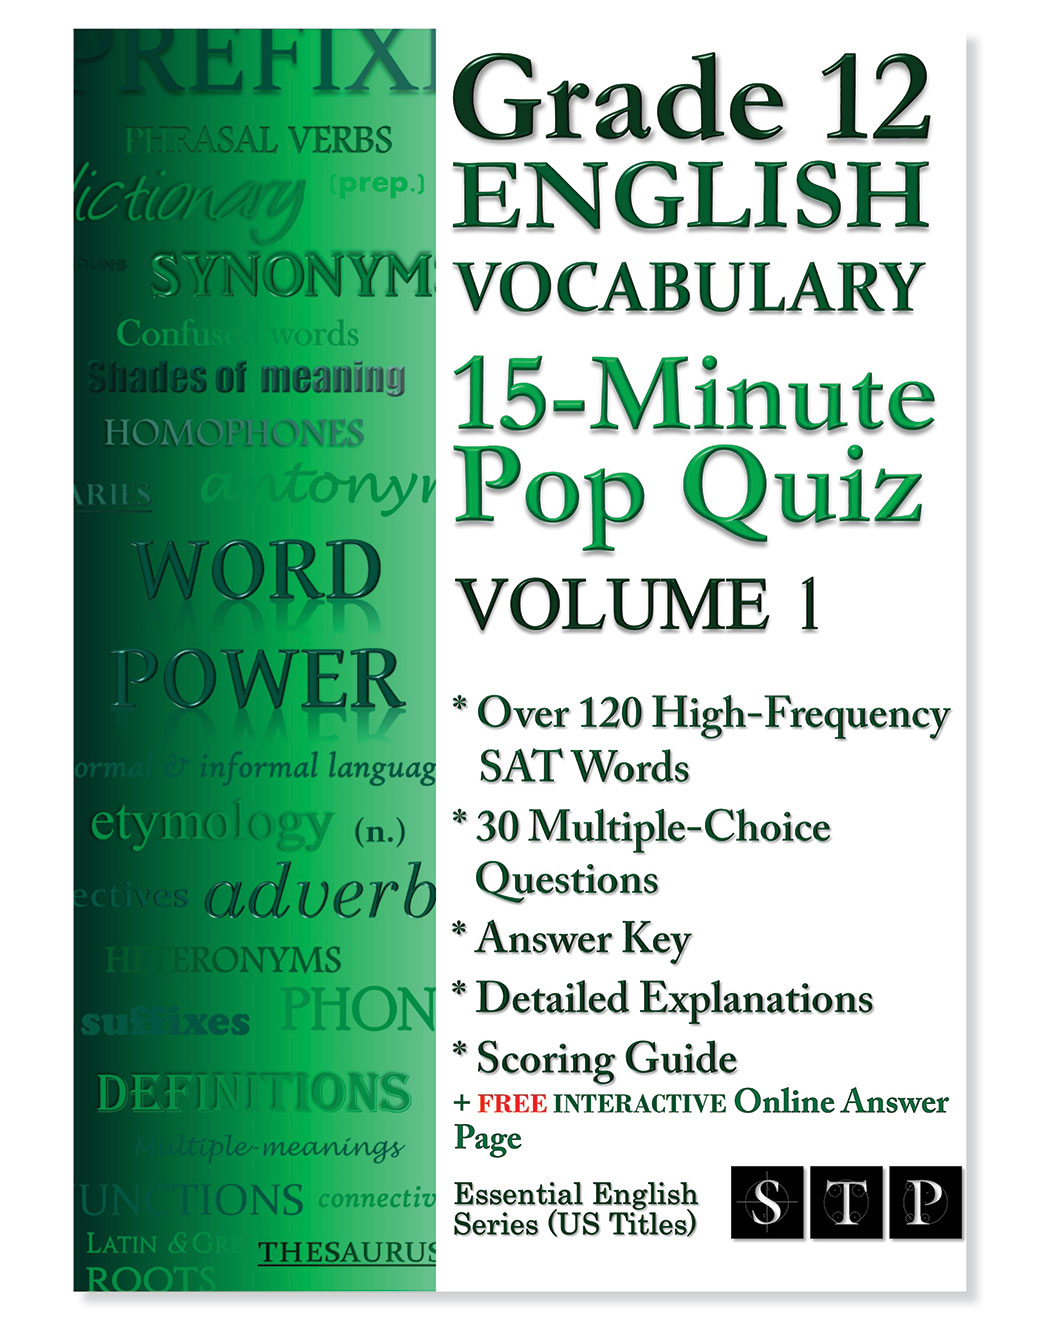 STP Books Grade 12 English Vocabulary 15-Minute Pop Quiz Volume 1